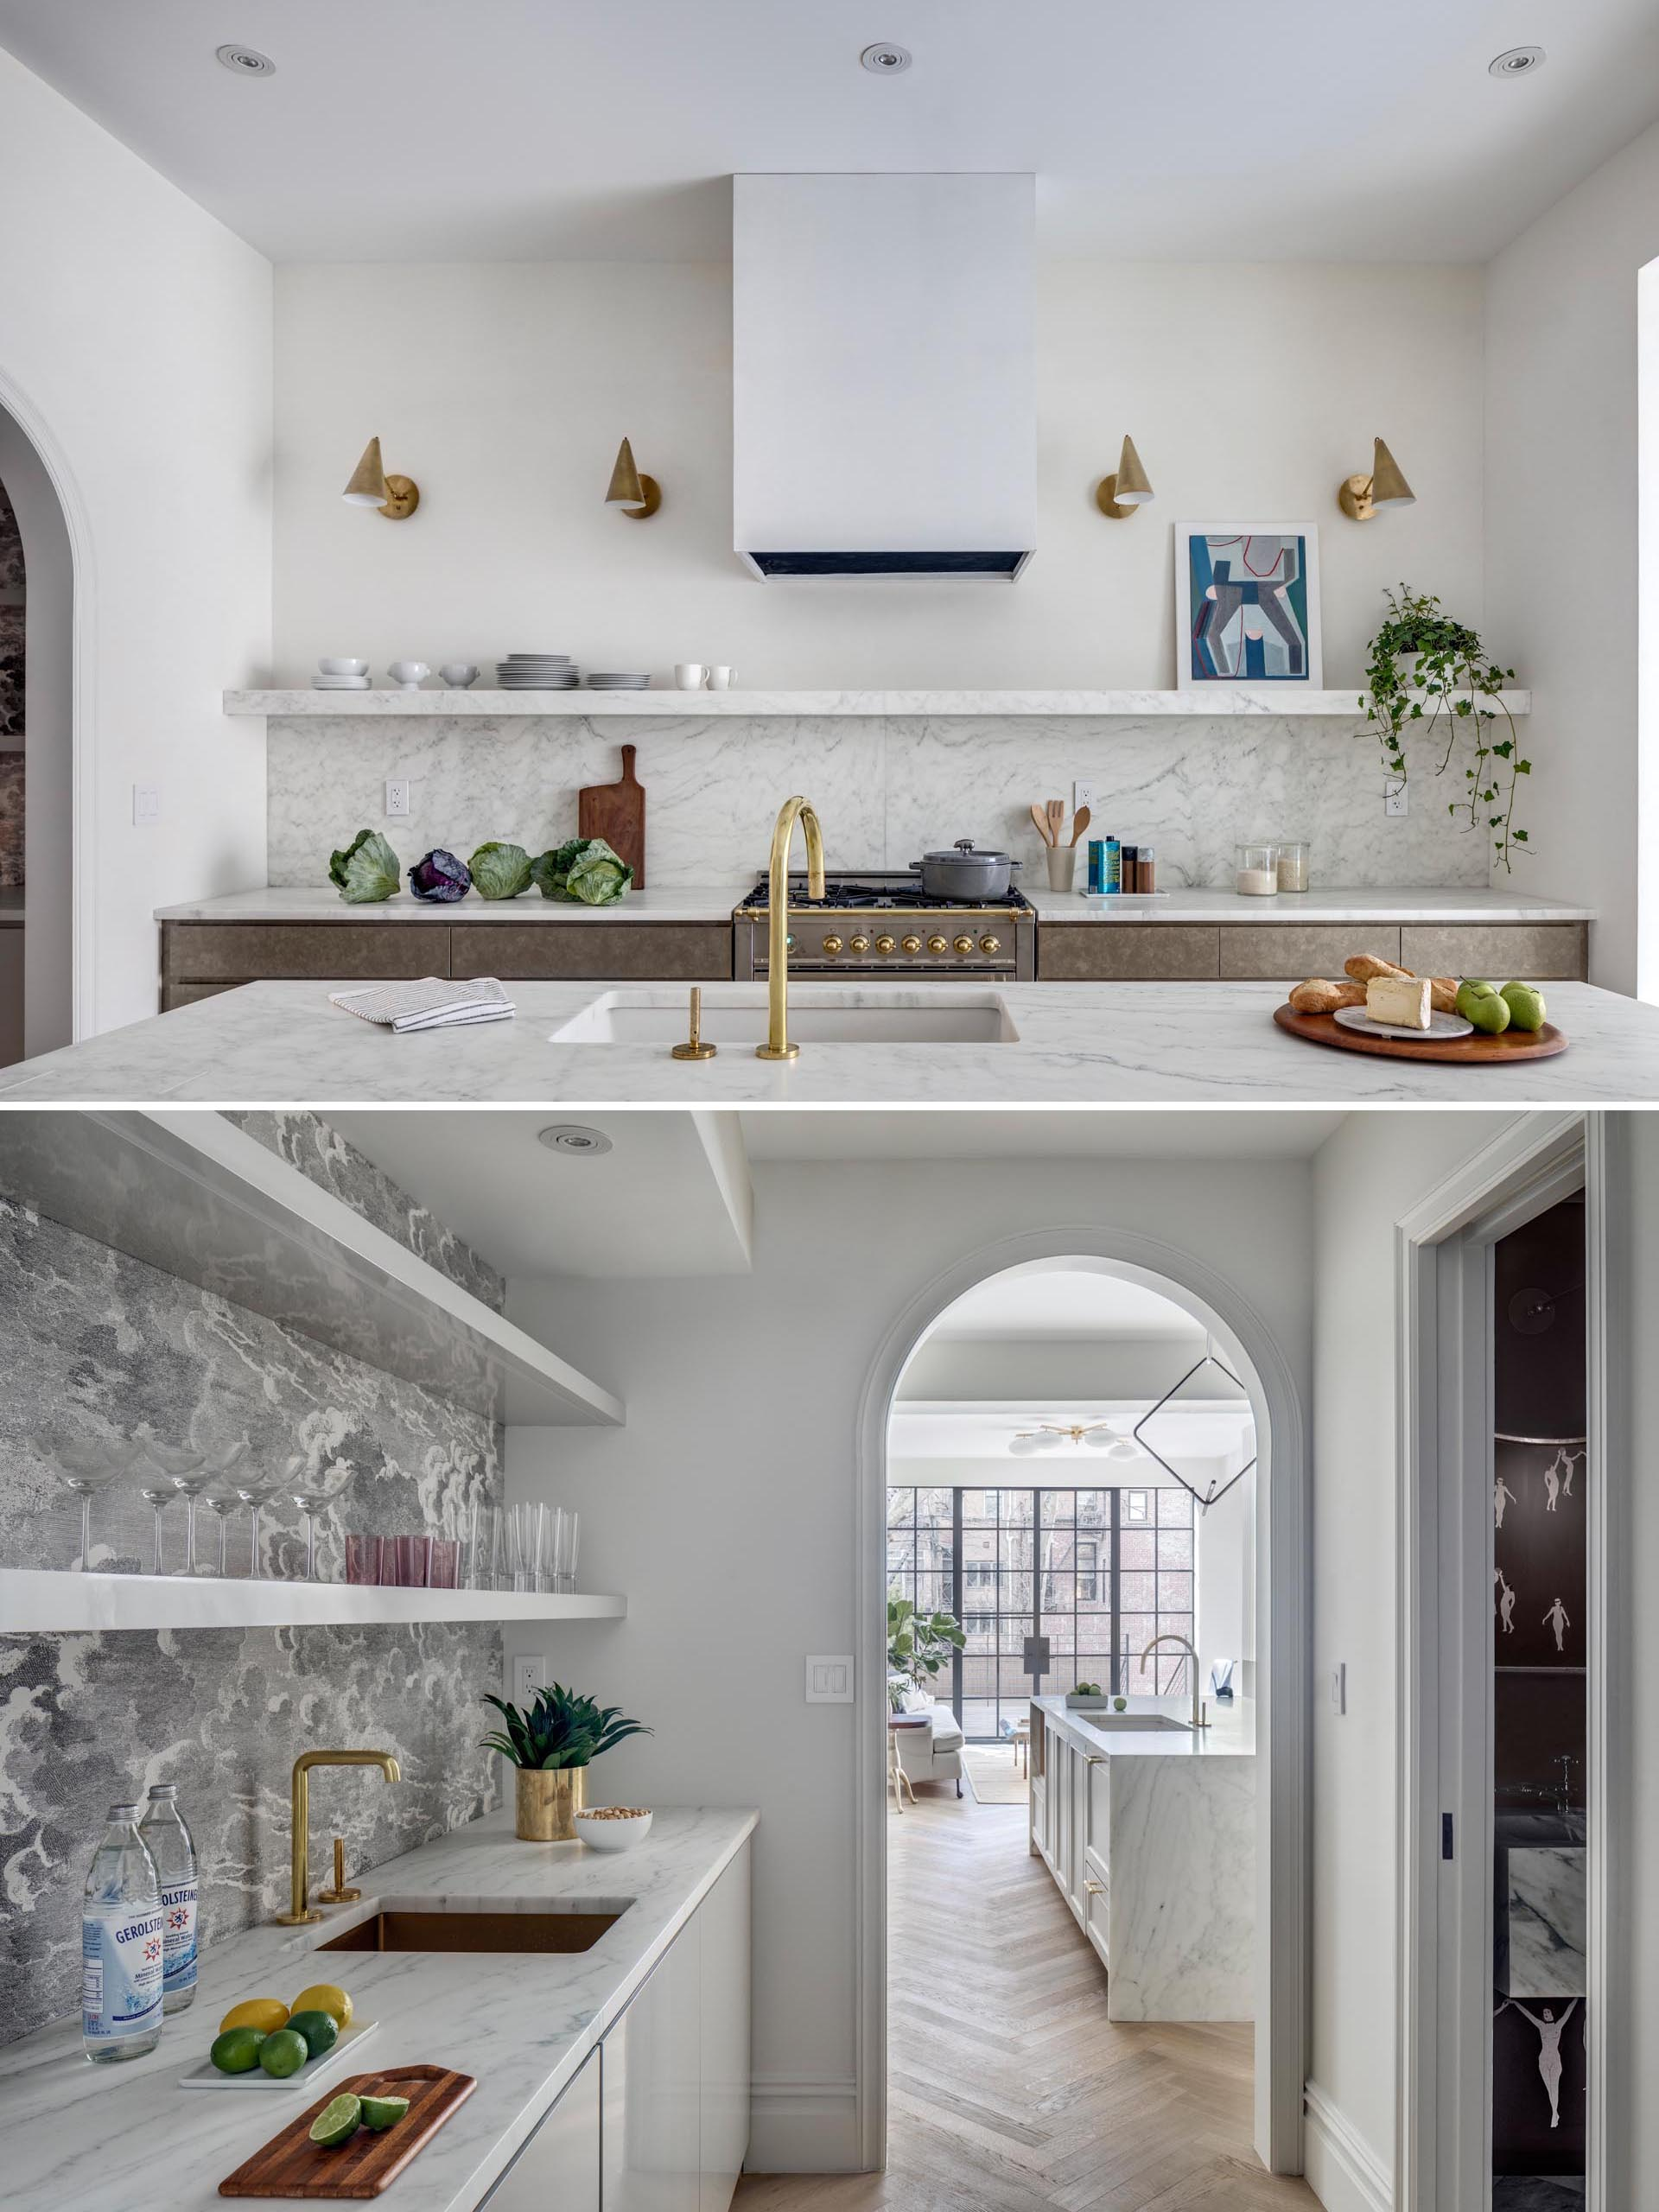 A modern kitchen with marble countertops, an undermount sink, bronze hardware and lighting, and a butler's pantry.